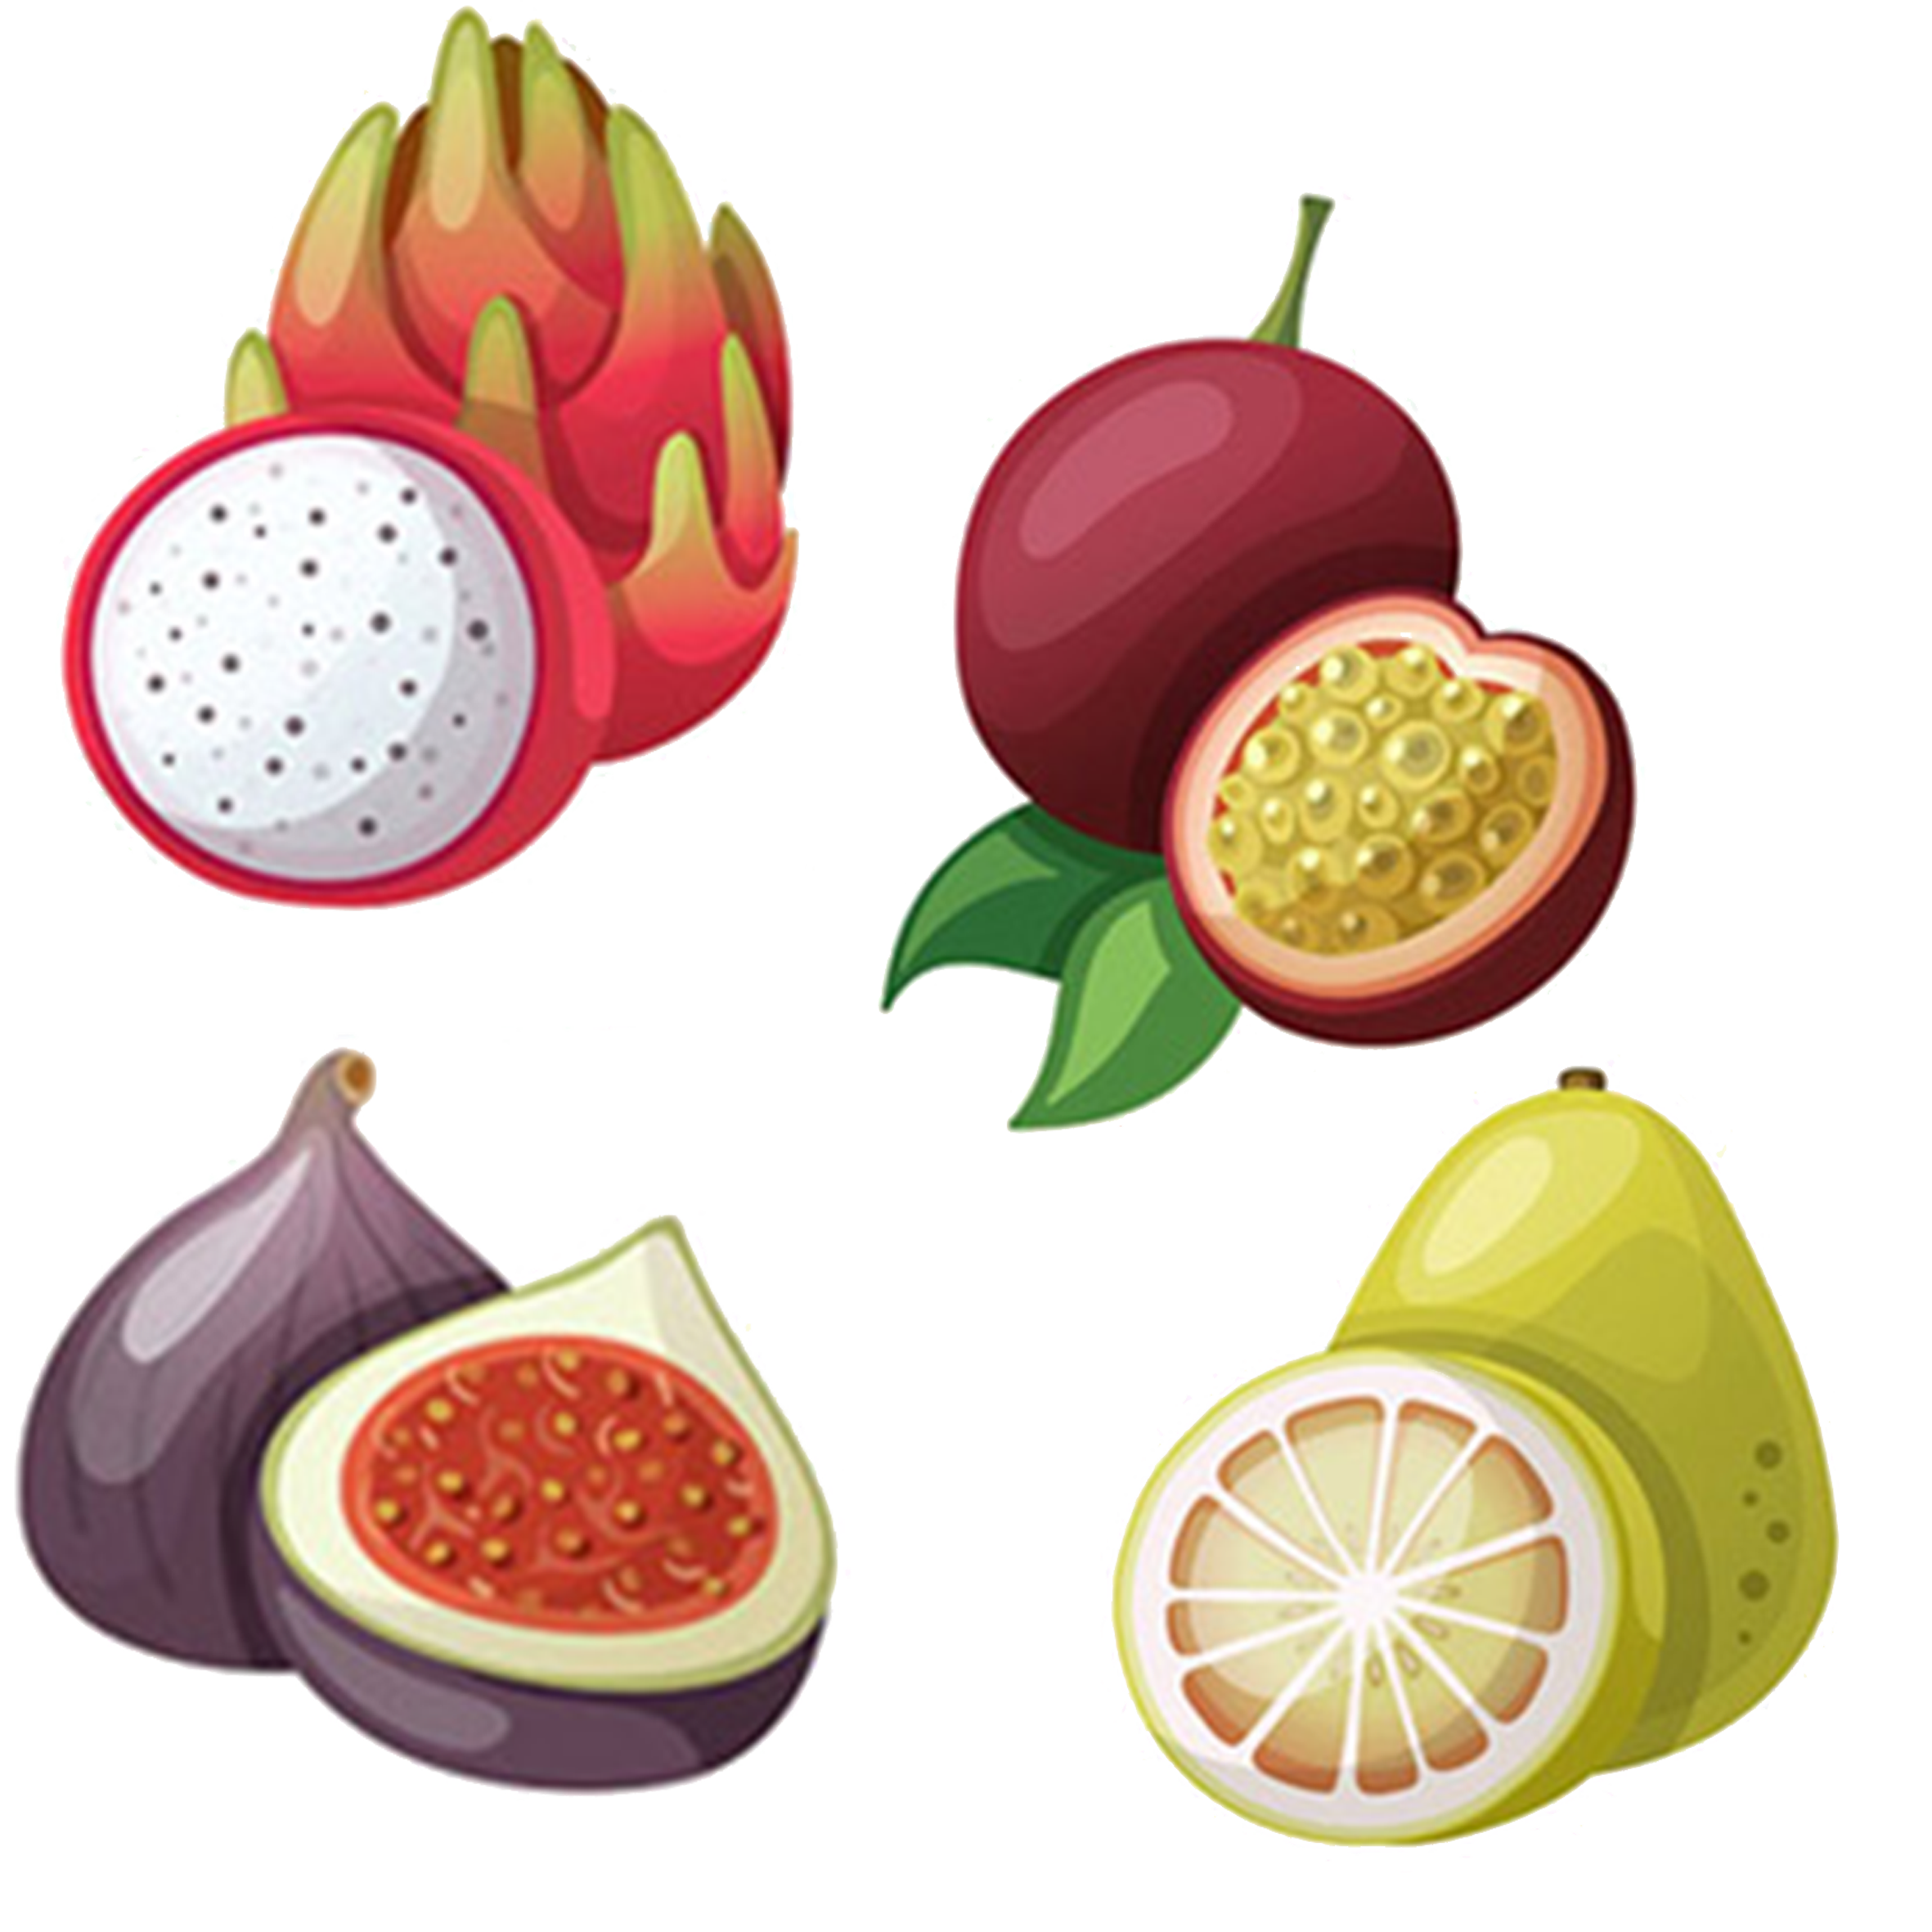 Fruits clipart tropical fruit. Illustration dragon mangosteen passion